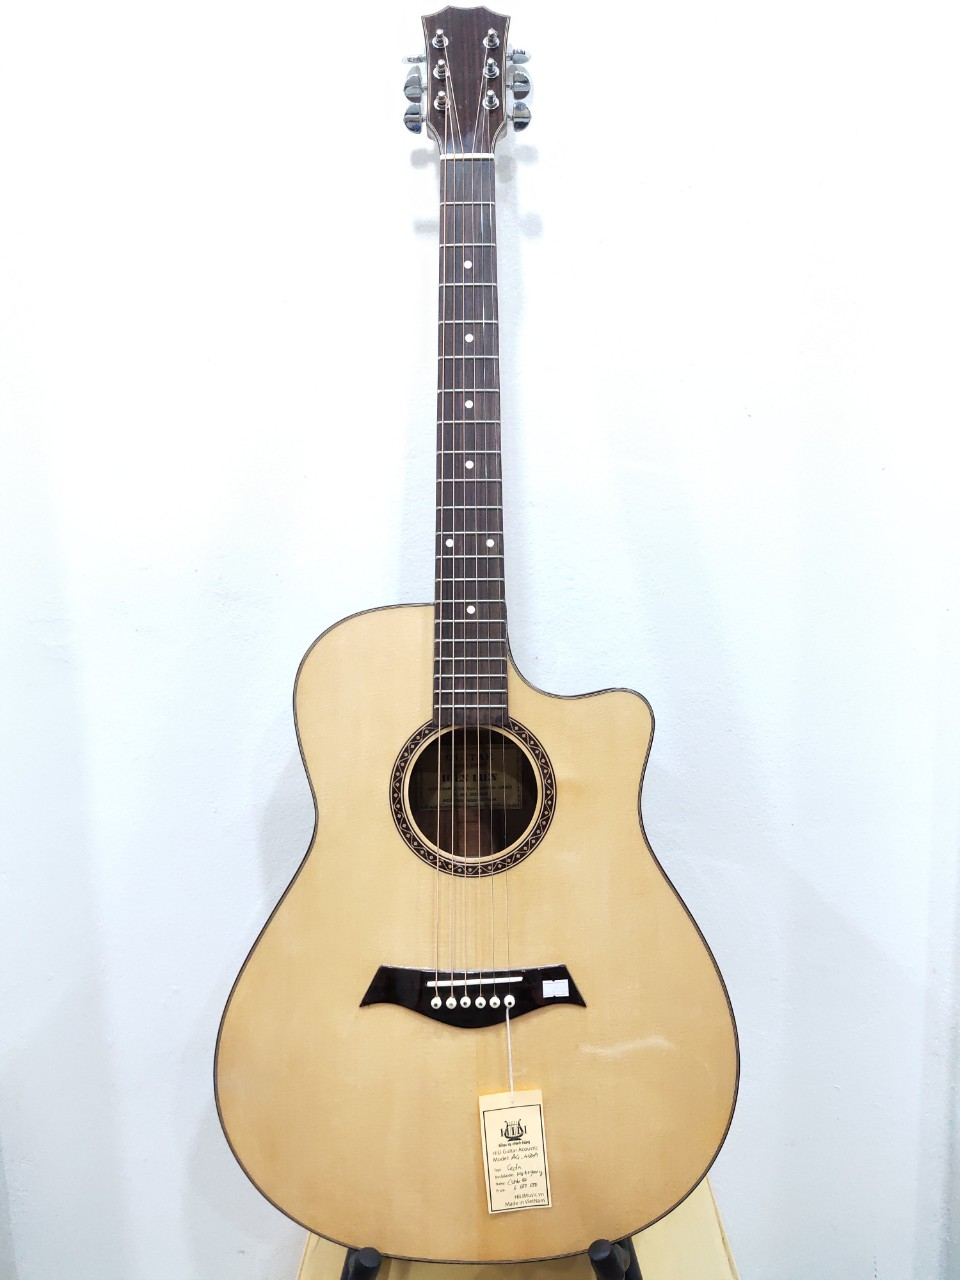 Đàn Guitar Acoustic AG-450A made in VietNam